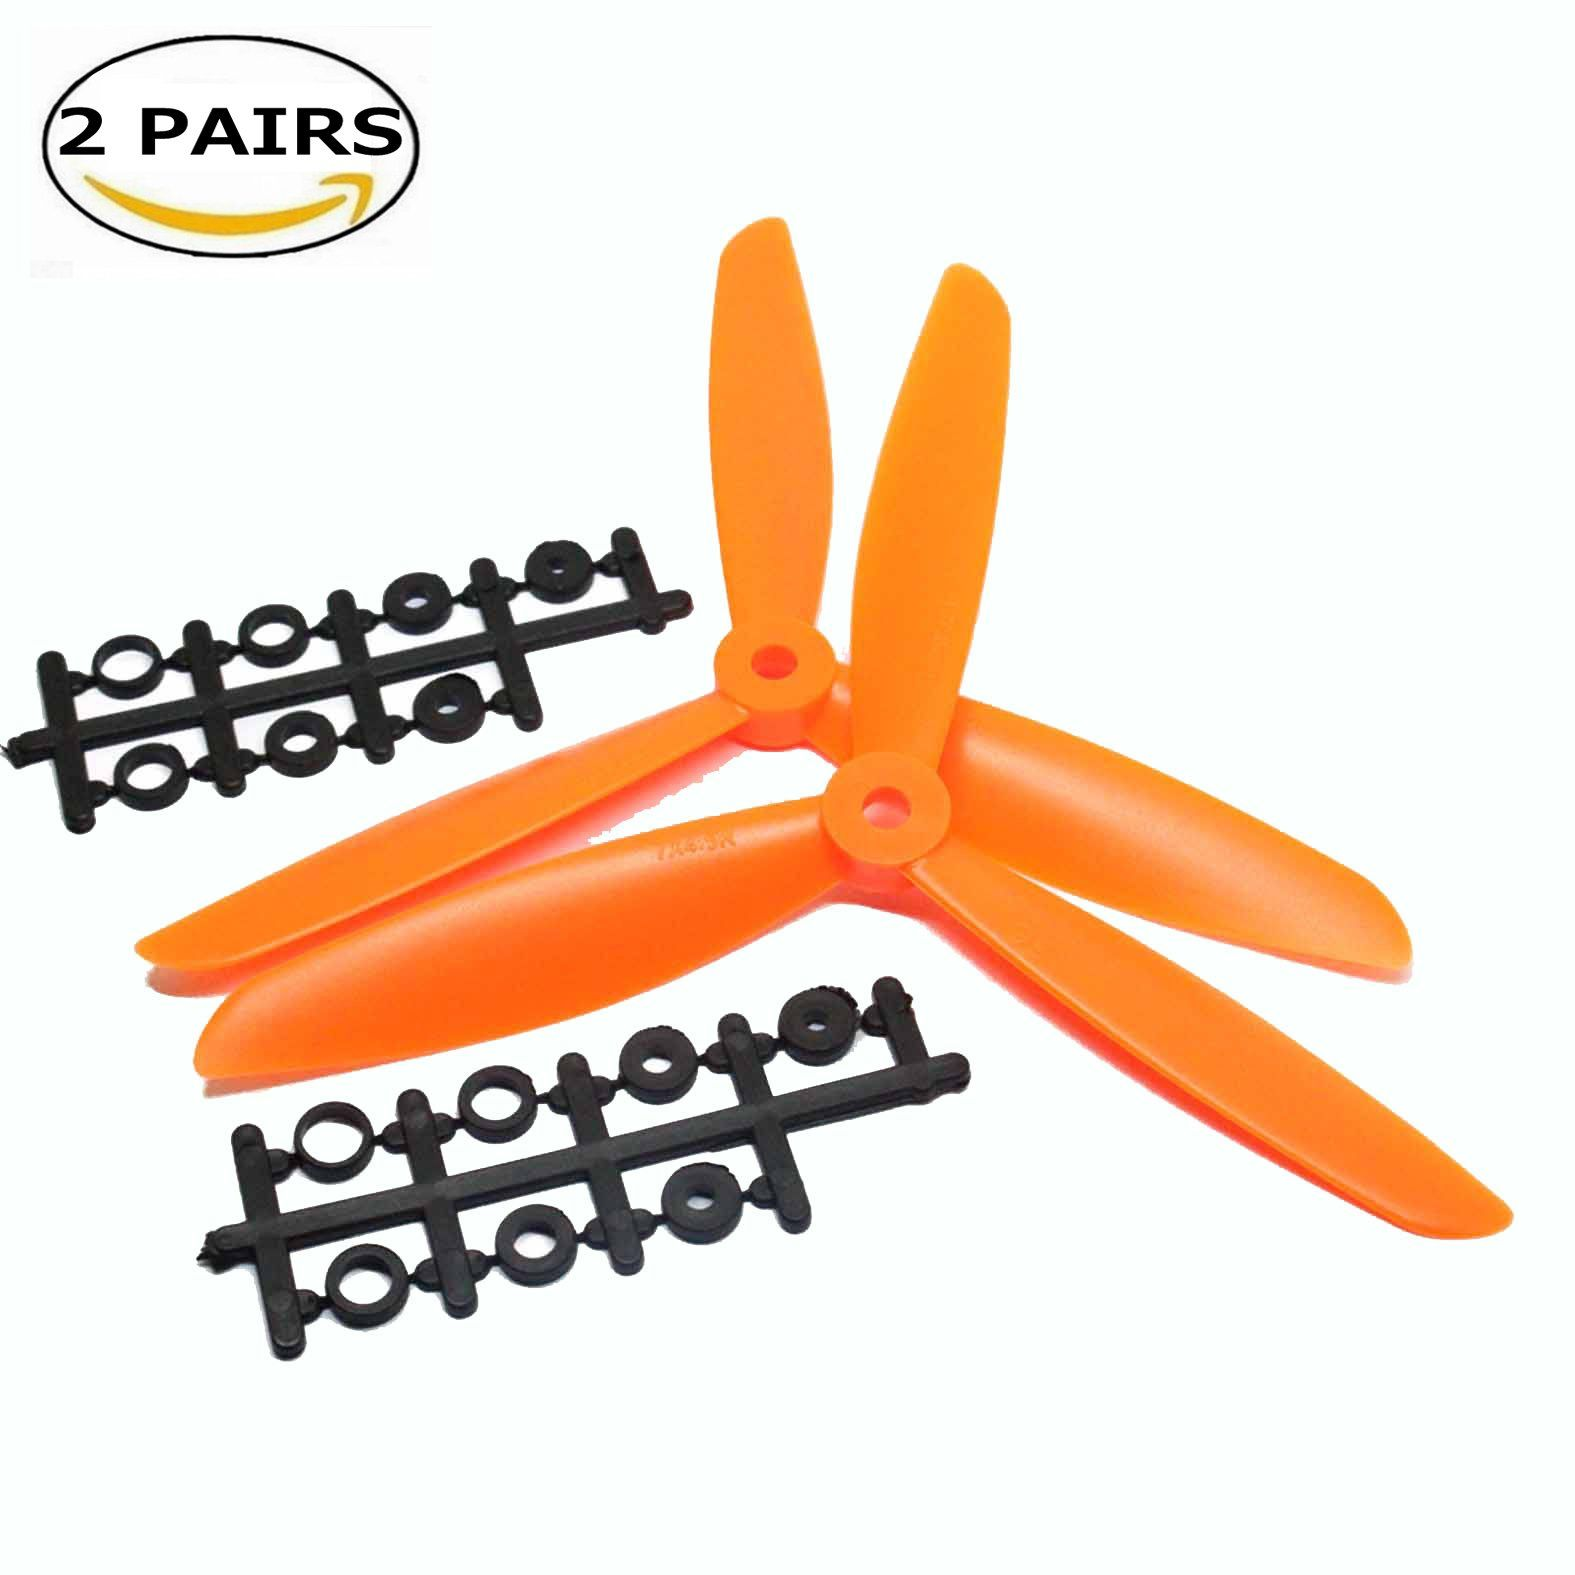 6 Colors DYS 6 Pairs 3045 3 Inch 3 Hole Propellers 3-Blade Prop for BE1102 BE1104 Motor FPV Quadcopters Multicopters Drones